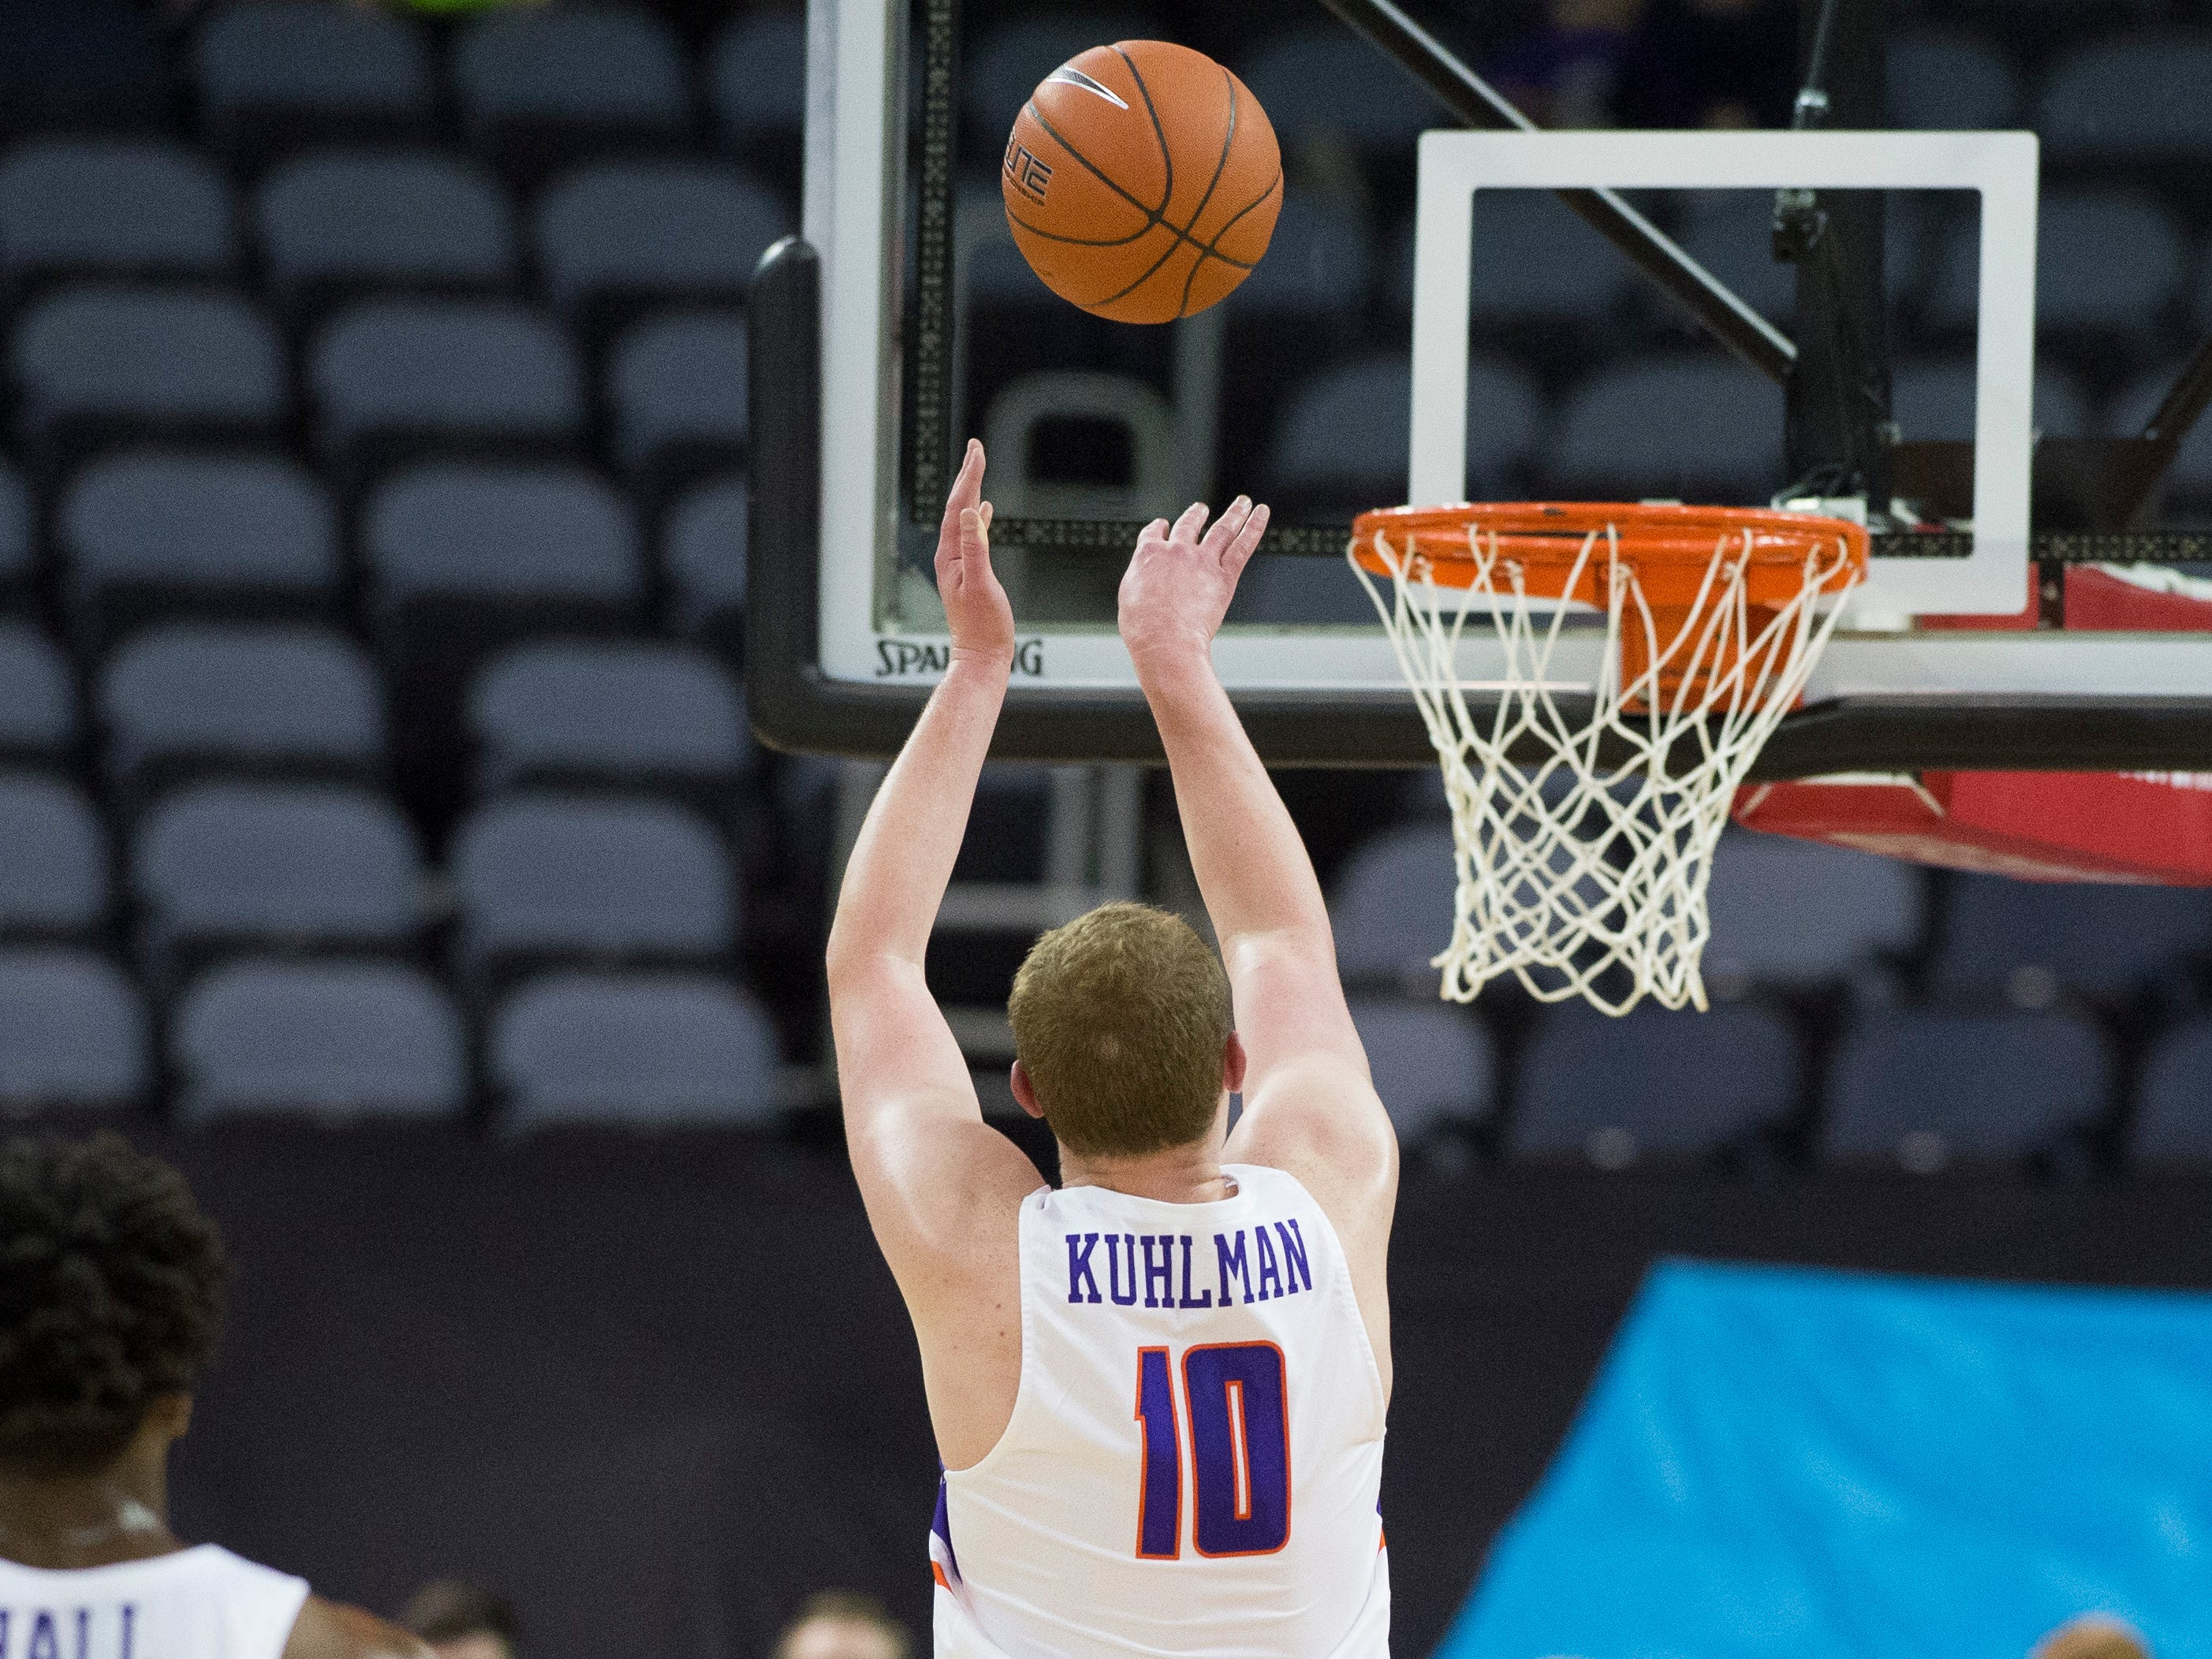 UE's Evan Kuhlman (10) fires off a shot during the UE vs Wyoming game at the Ford Center Wednesday, Nov. 28, 2018. UE won 86-76.